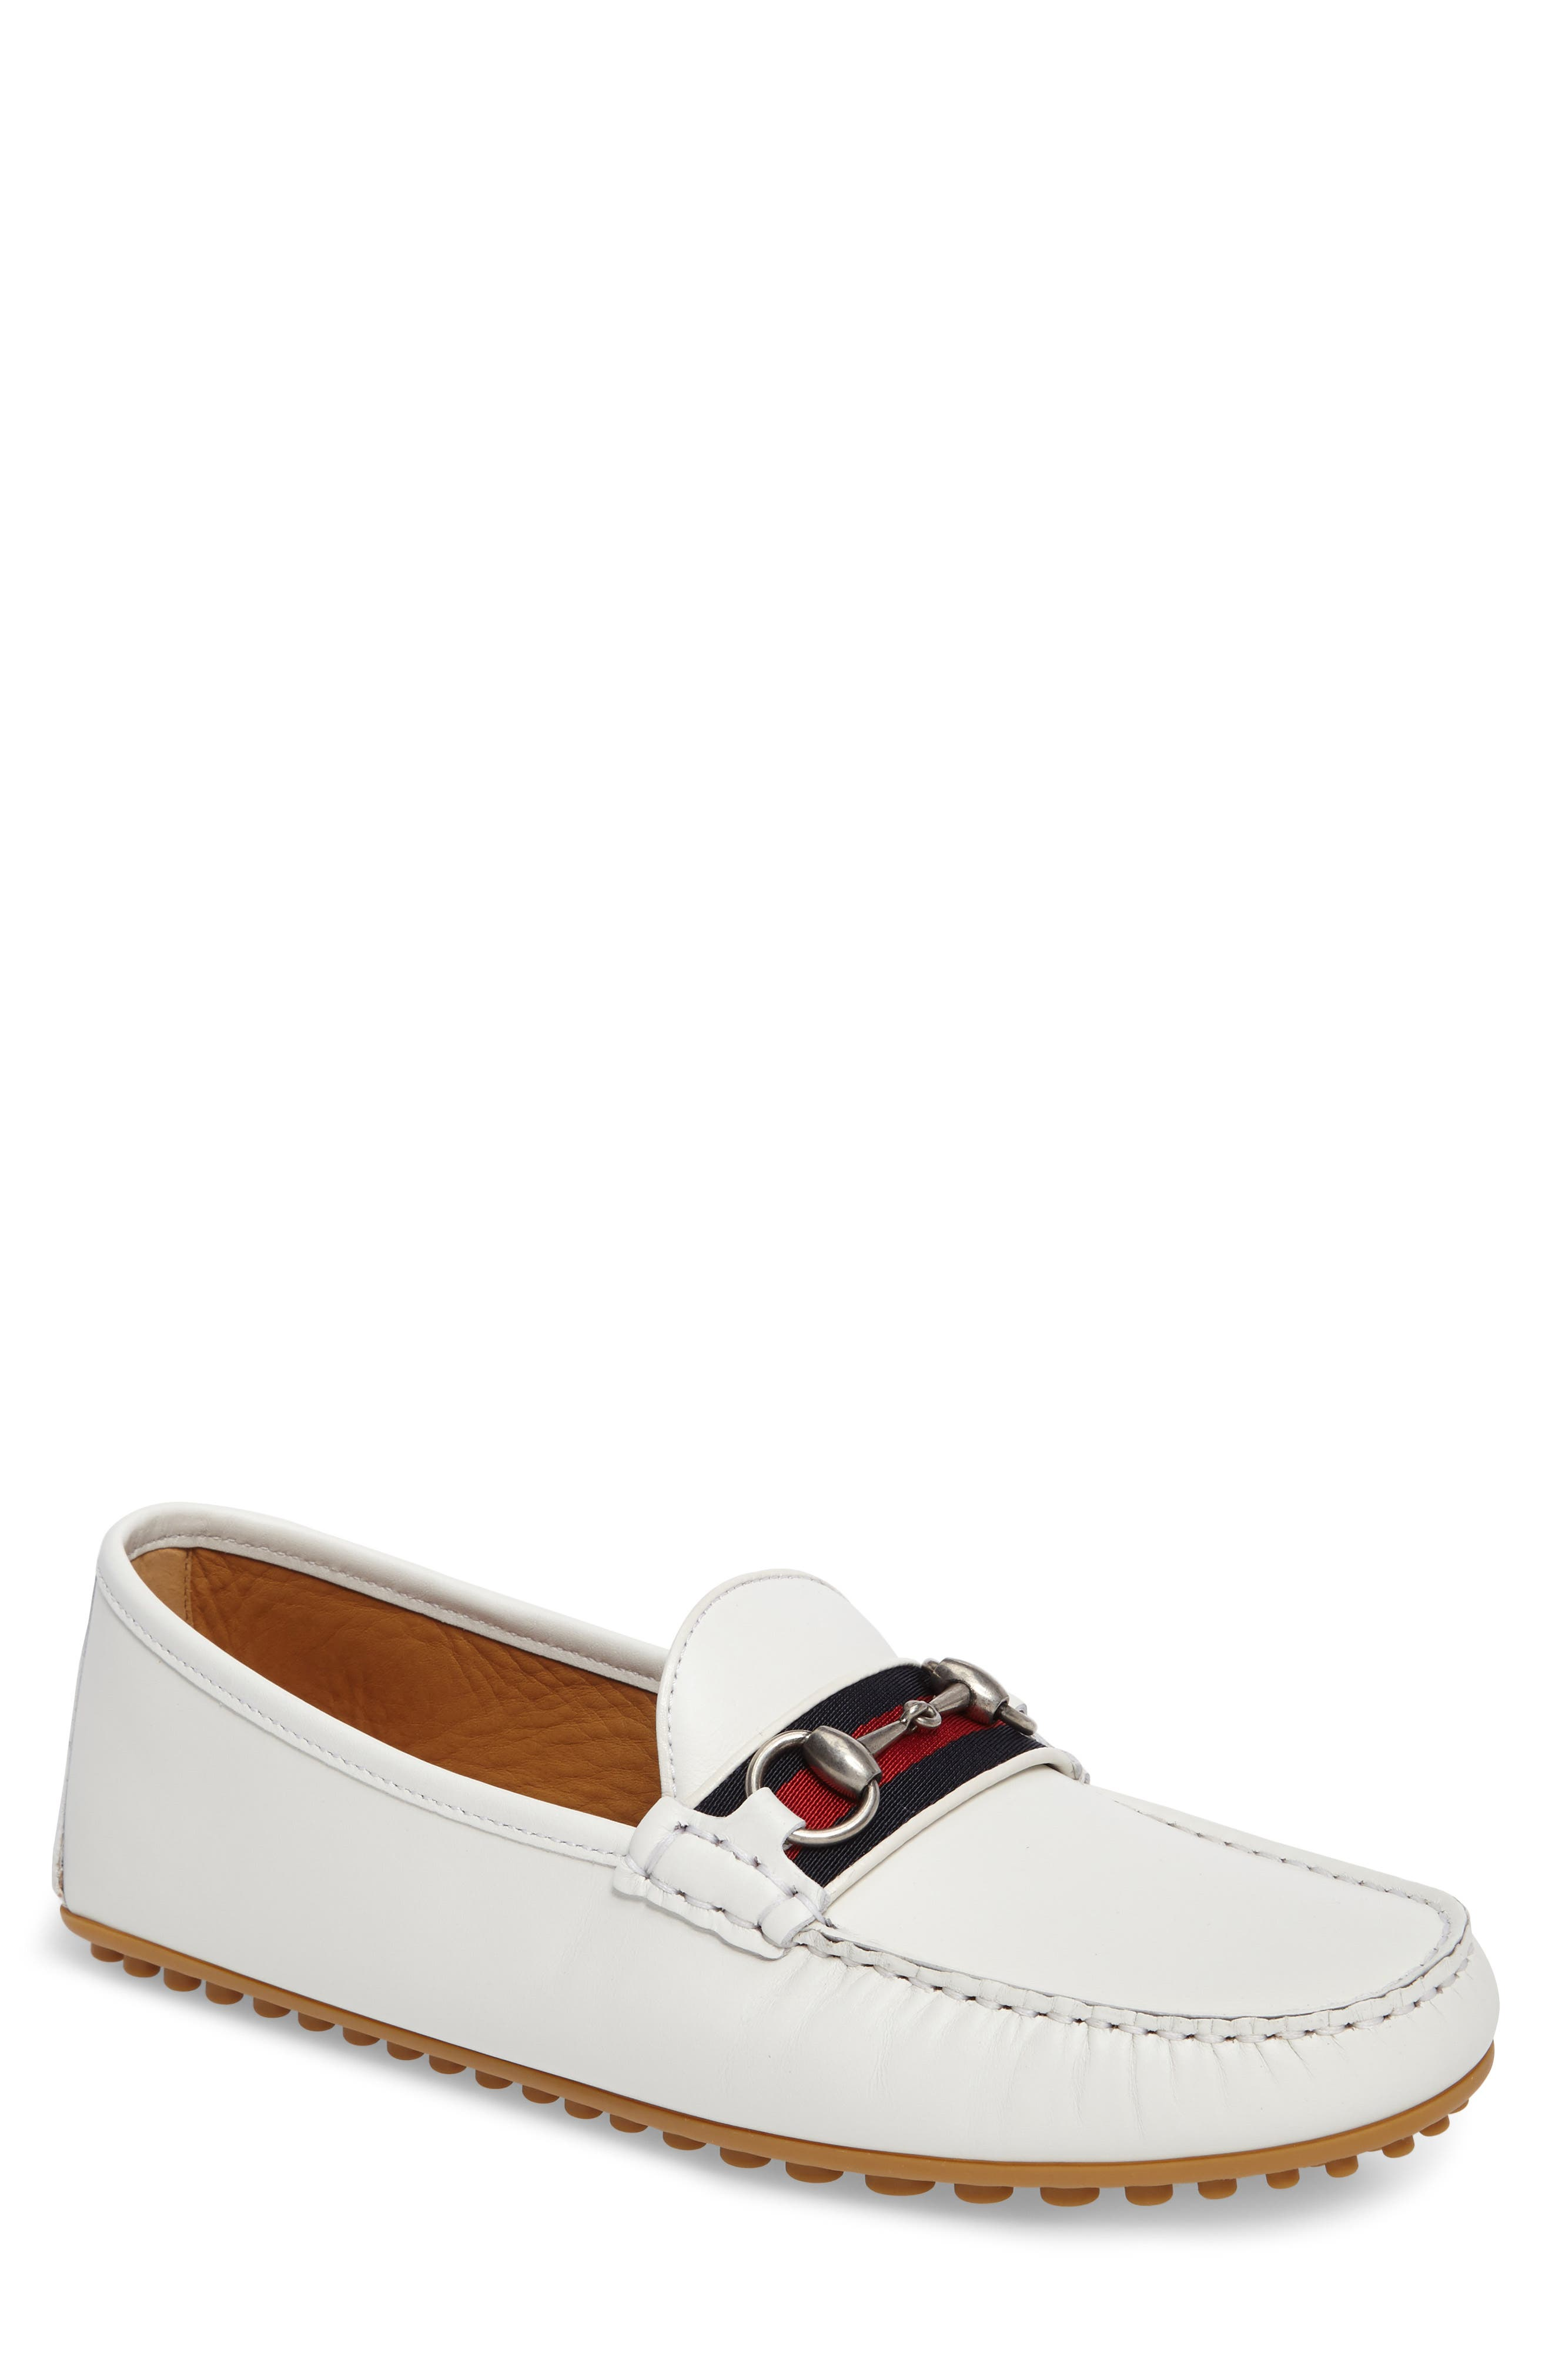 Kanye Bit Loafer,                             Main thumbnail 1, color,                             White Leather